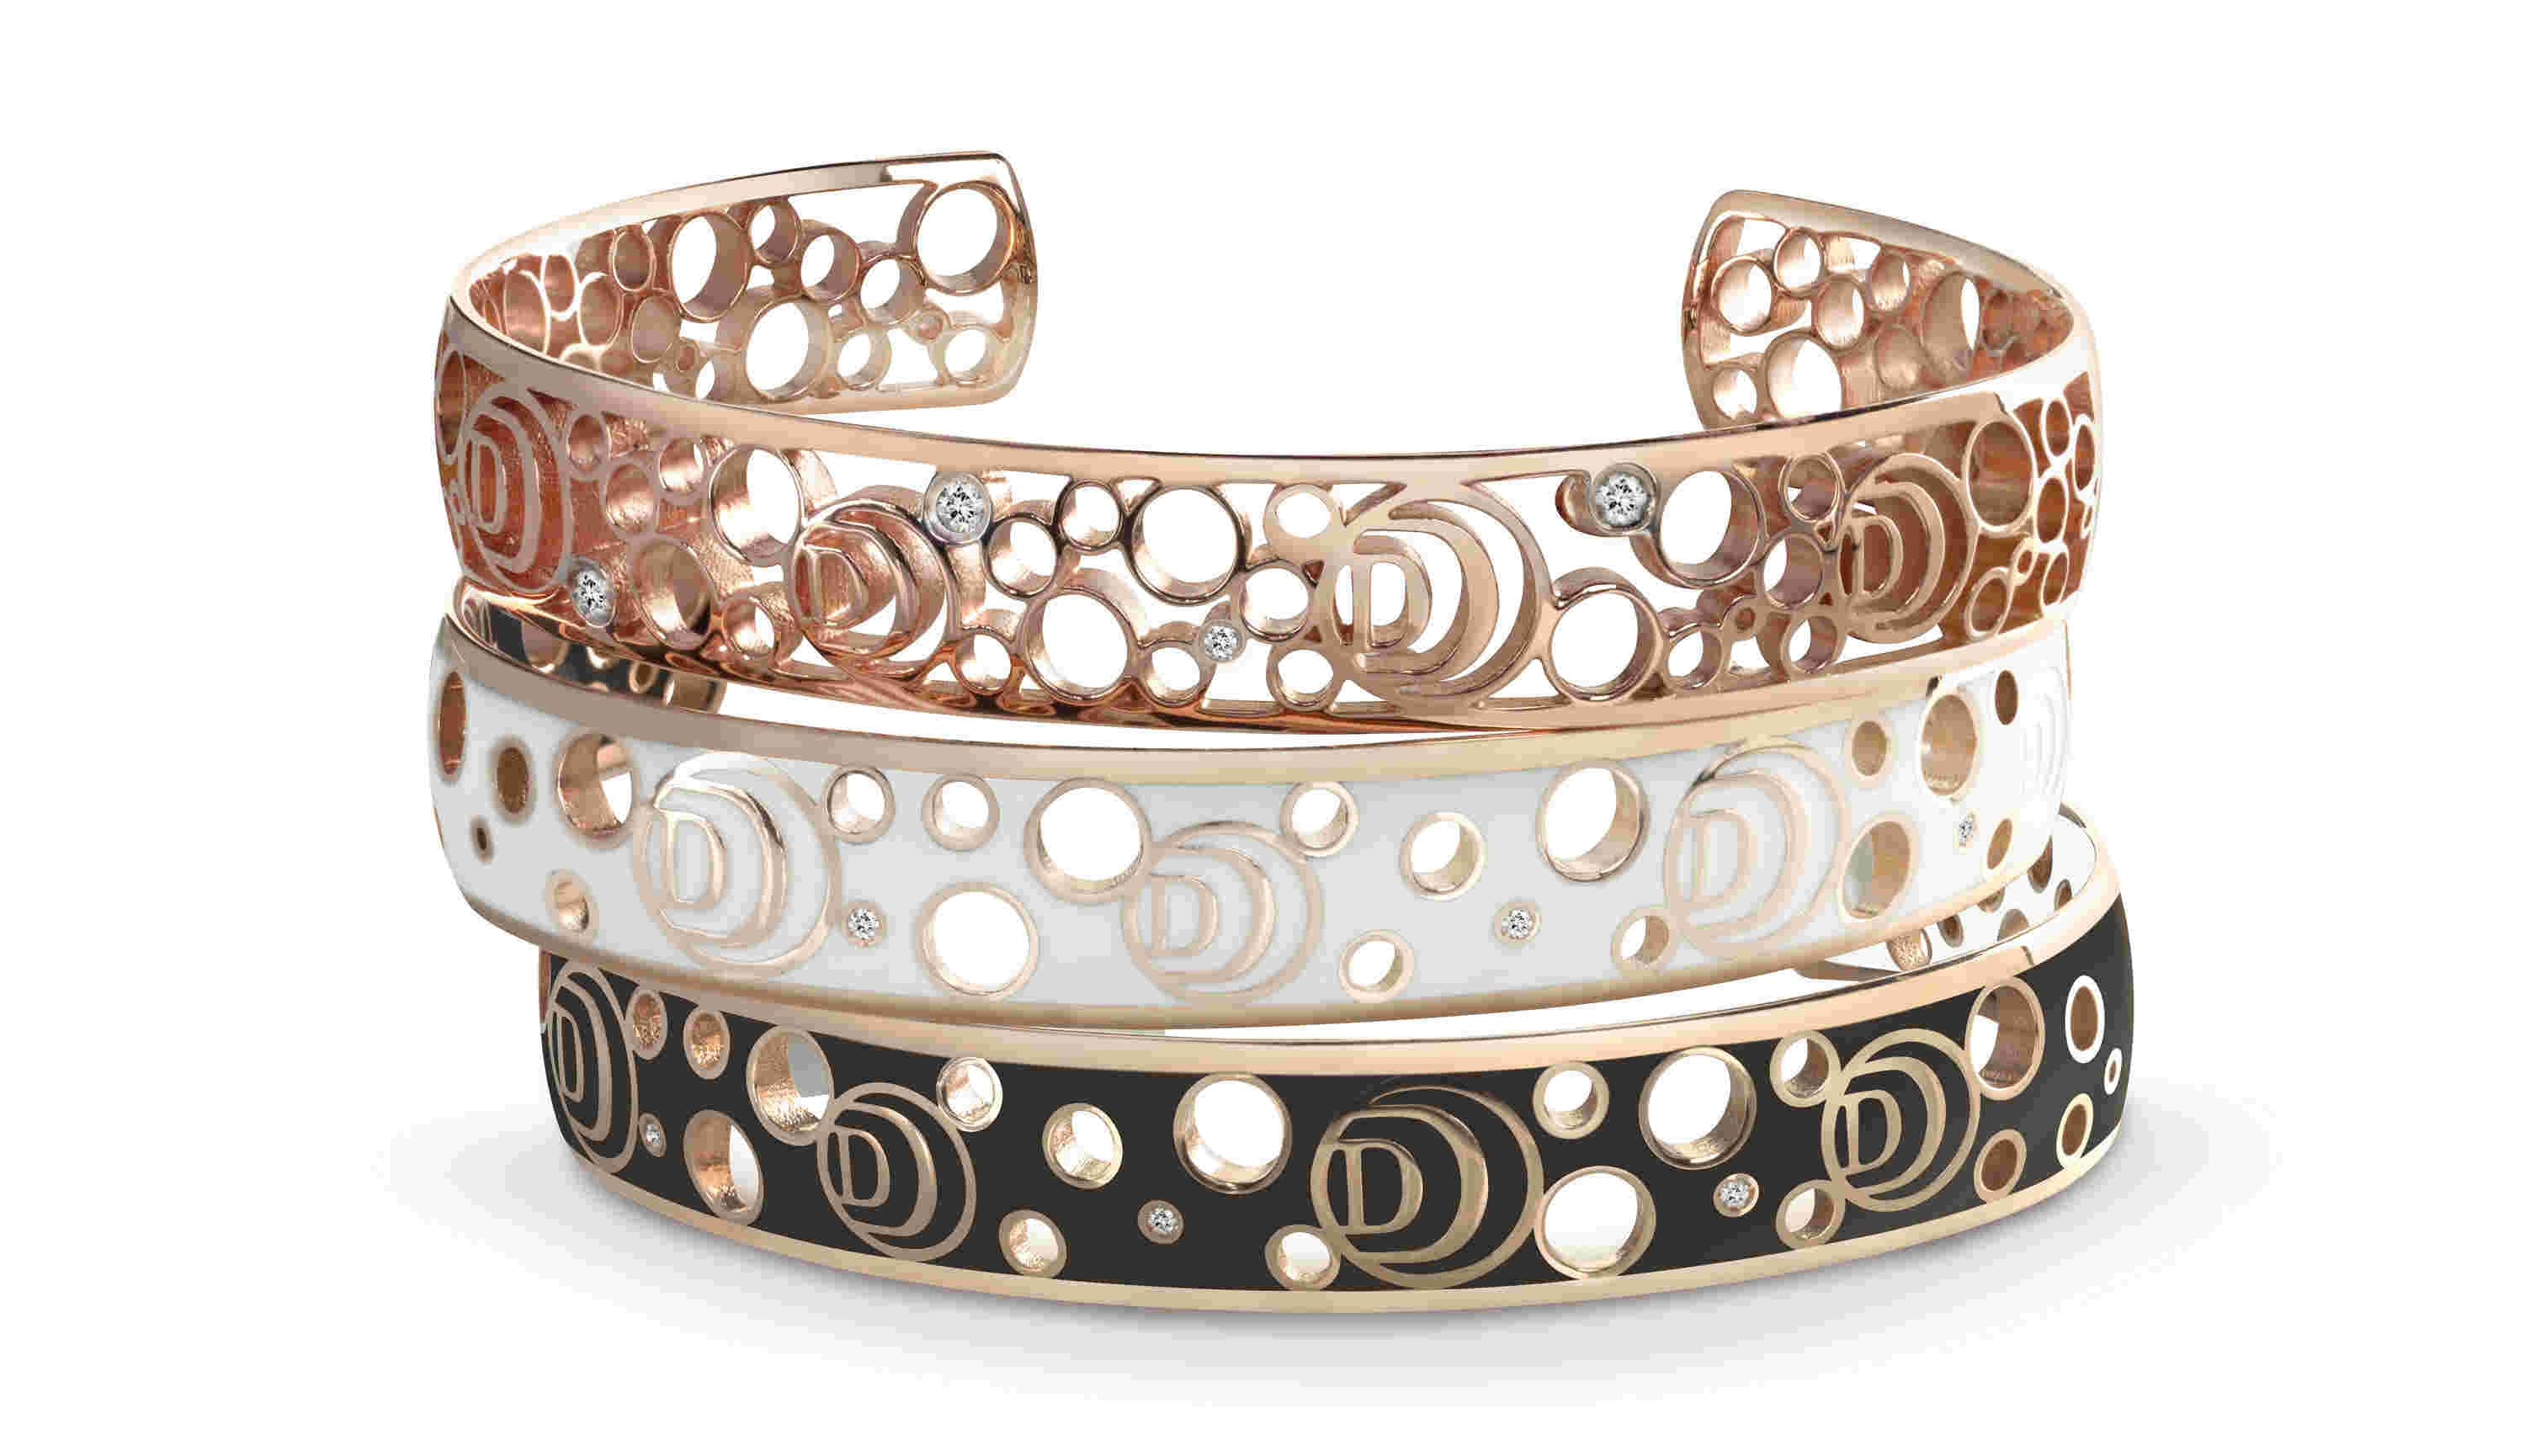 Damiani Damianissima Bracelets in Pink Gold and Ceramic